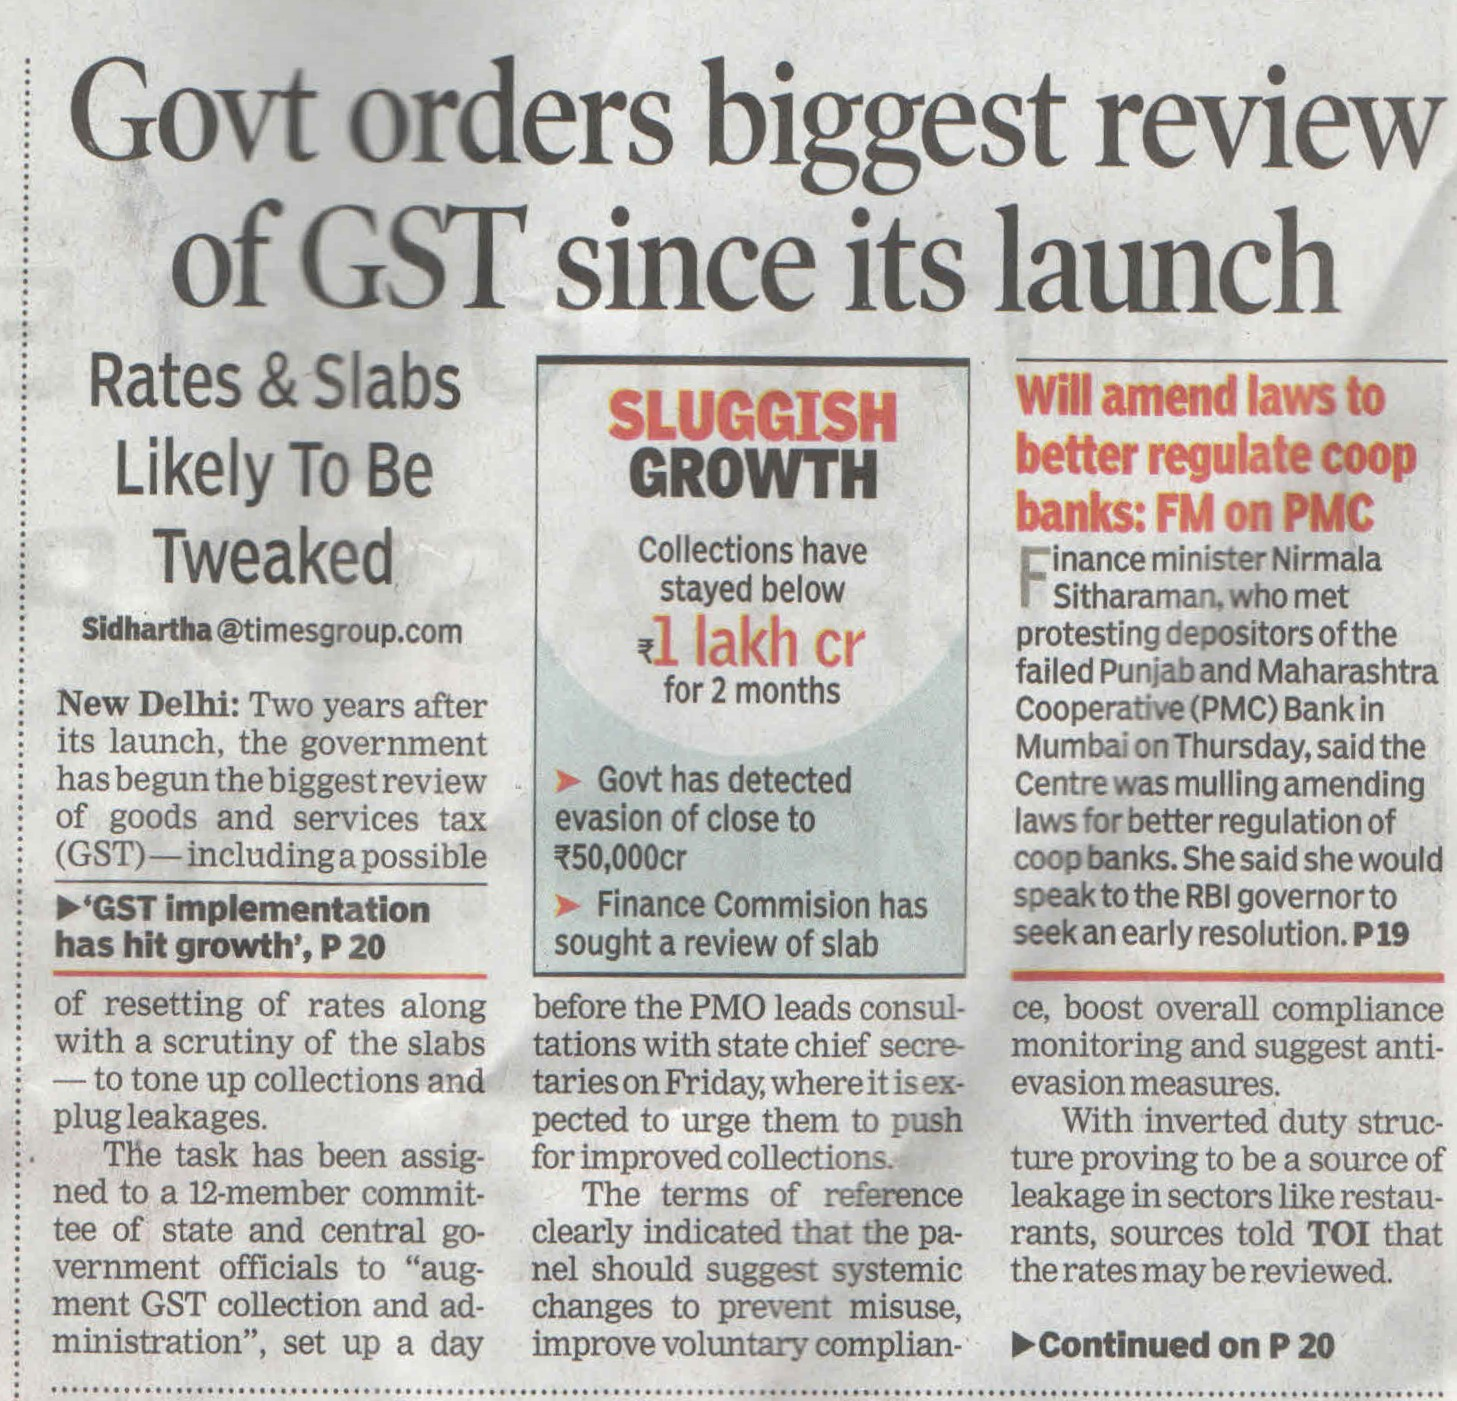 Govt. orders biggest review of GST since its launch